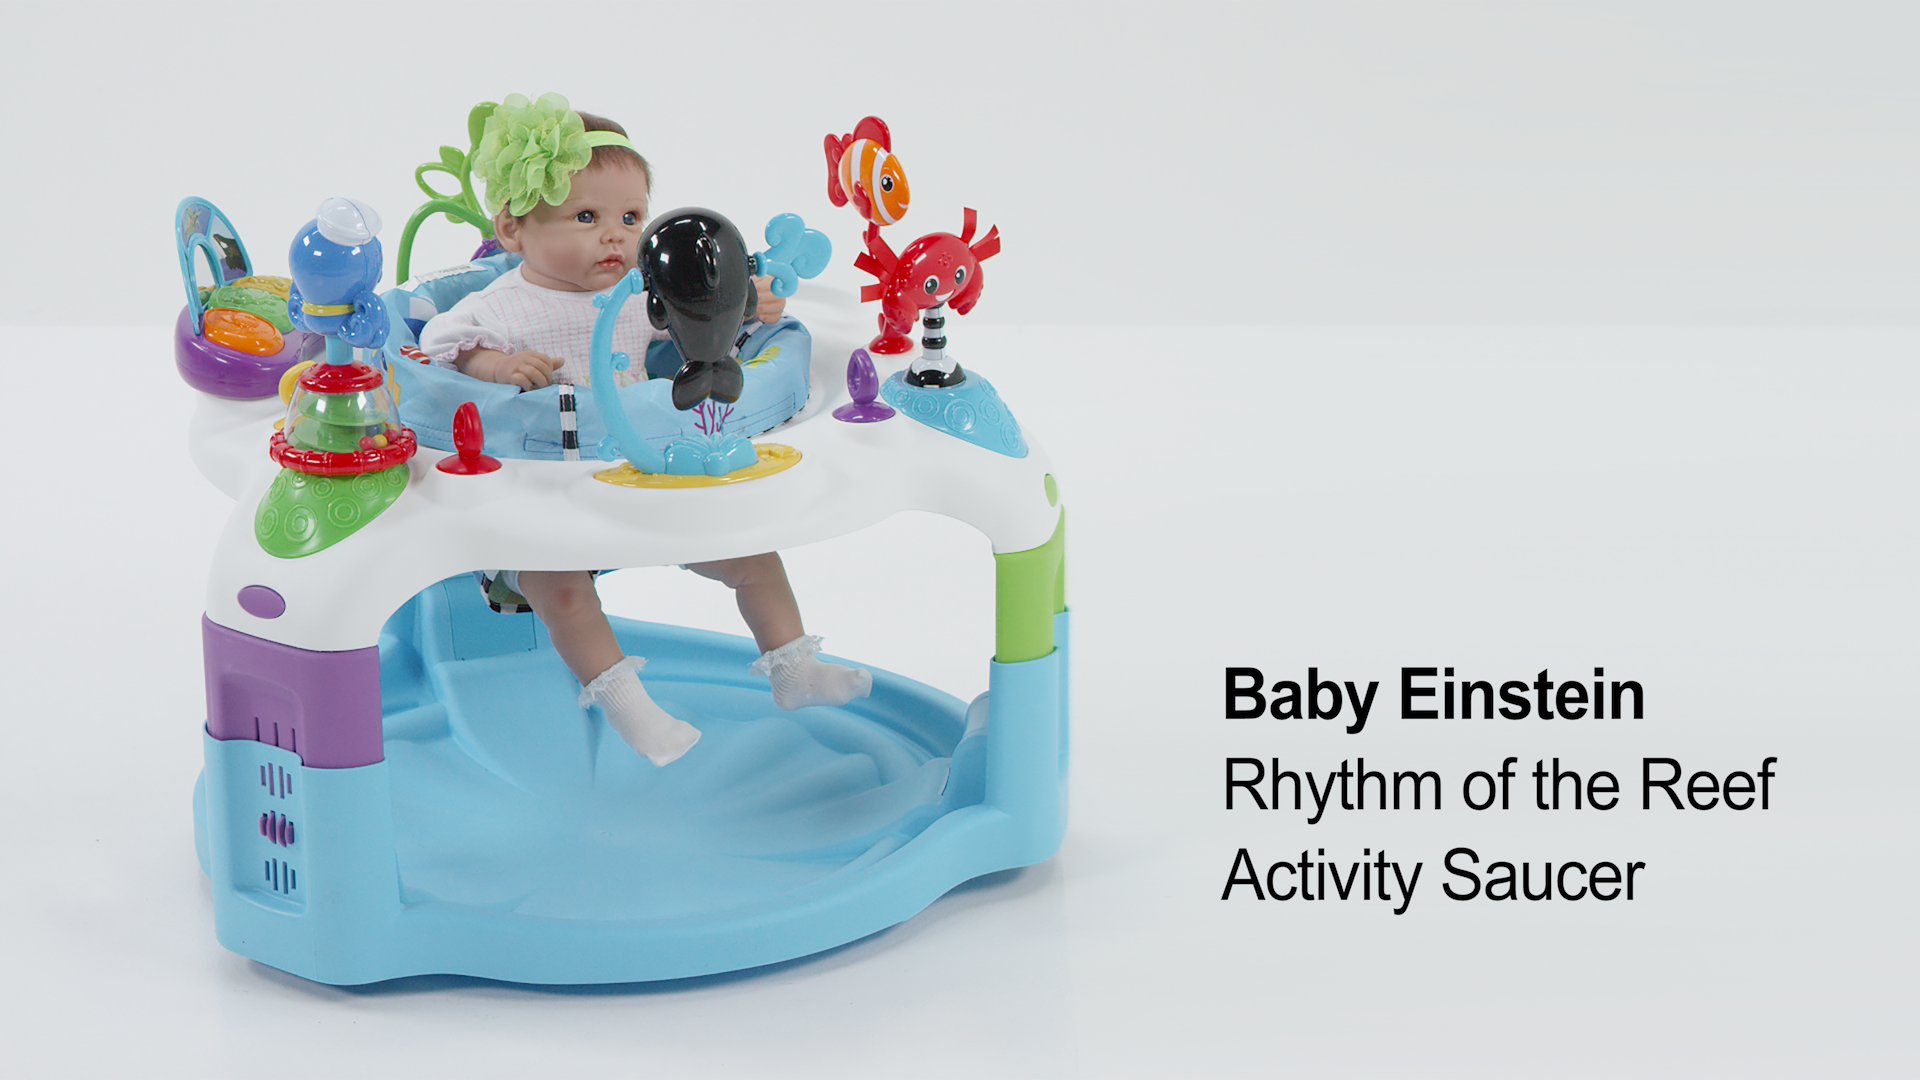 76252ac0d Baby Einstein Rhythm of the Reef Activity Saucer